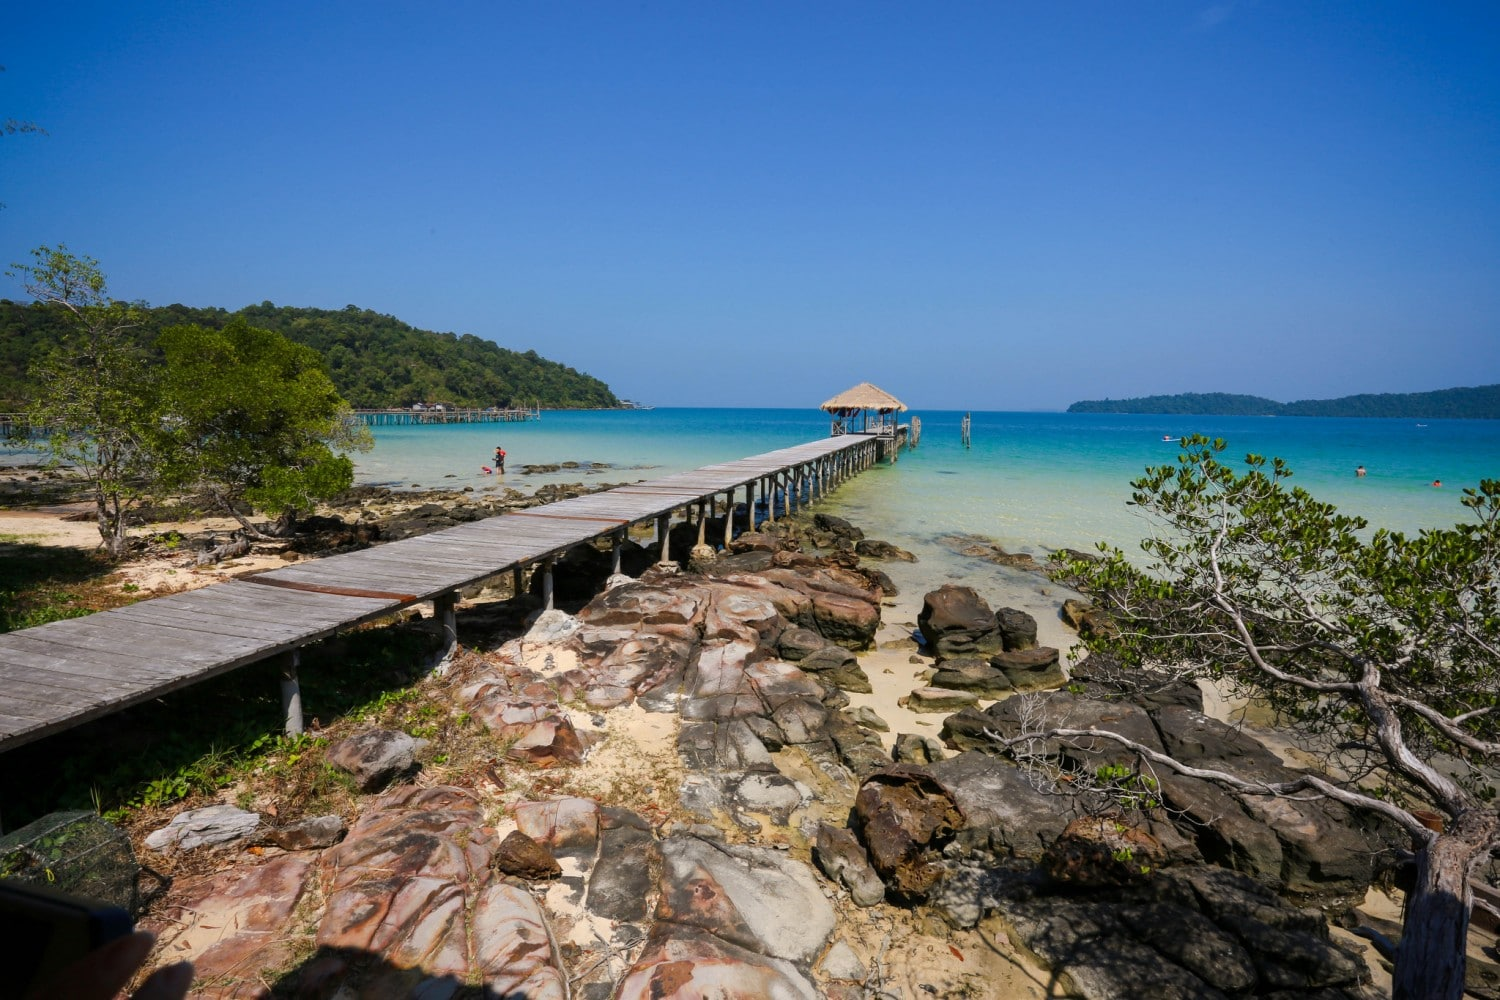 Koh Rong. Four awesome Southeast Asia travel itineraries I Photography I Itinerary I Landscape I Food I Architecture I Laos I Thailand I Cambodia I Myanmar I Malaysia I Vietnam. Read the full travel guide now #travel #backpacking